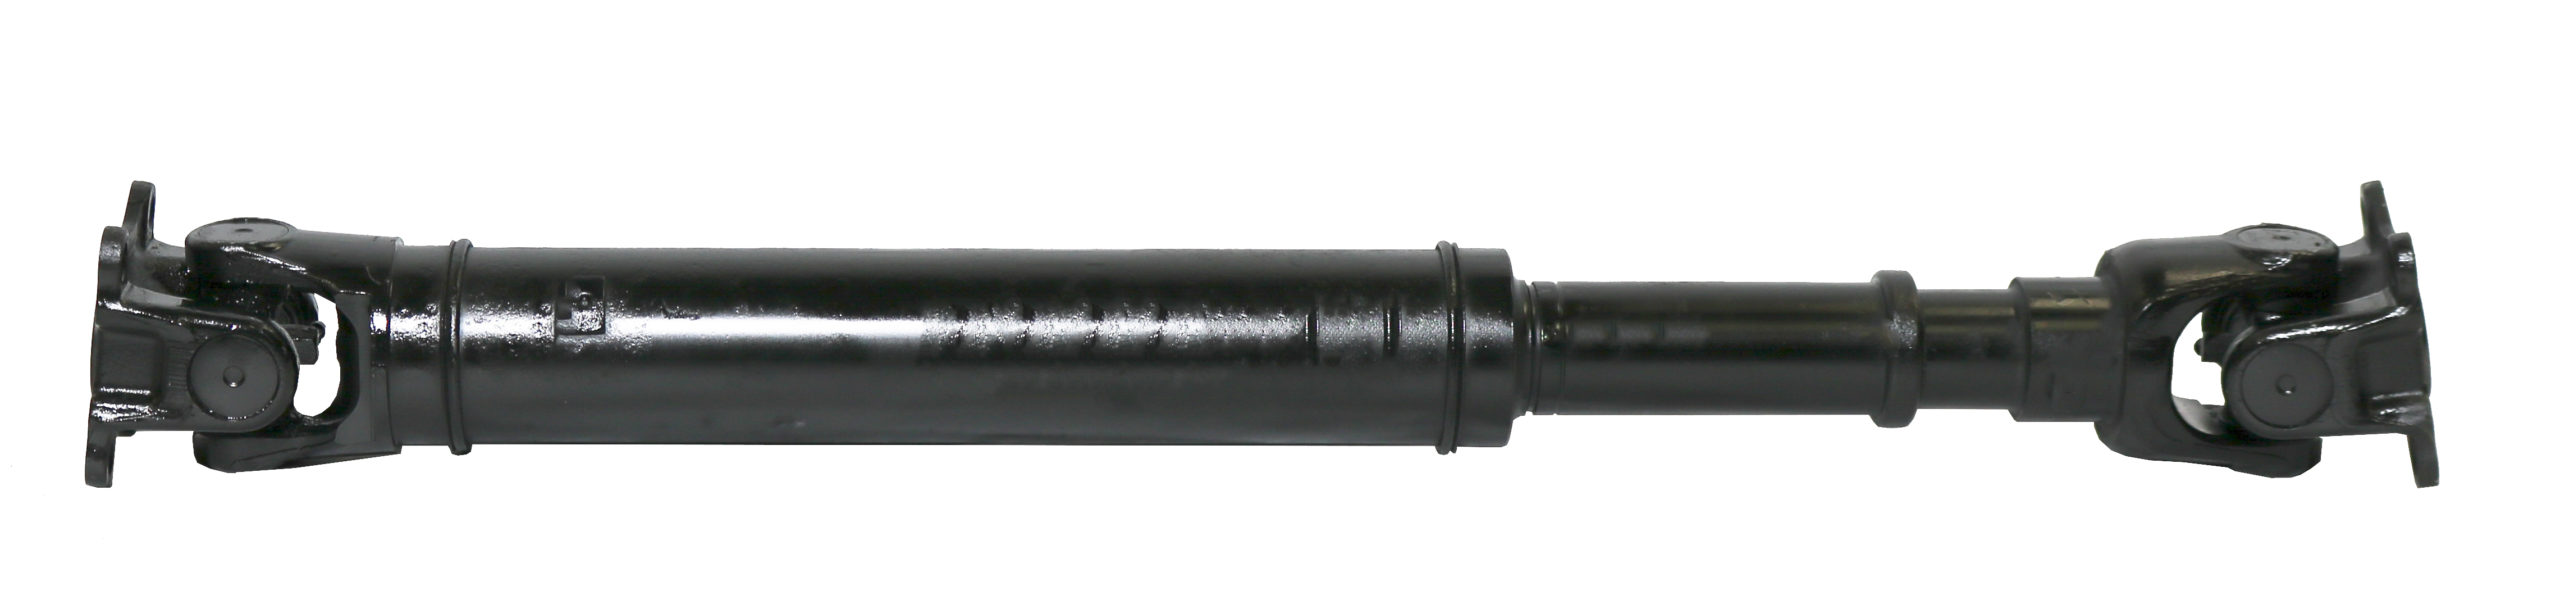 Front Toyota driveline